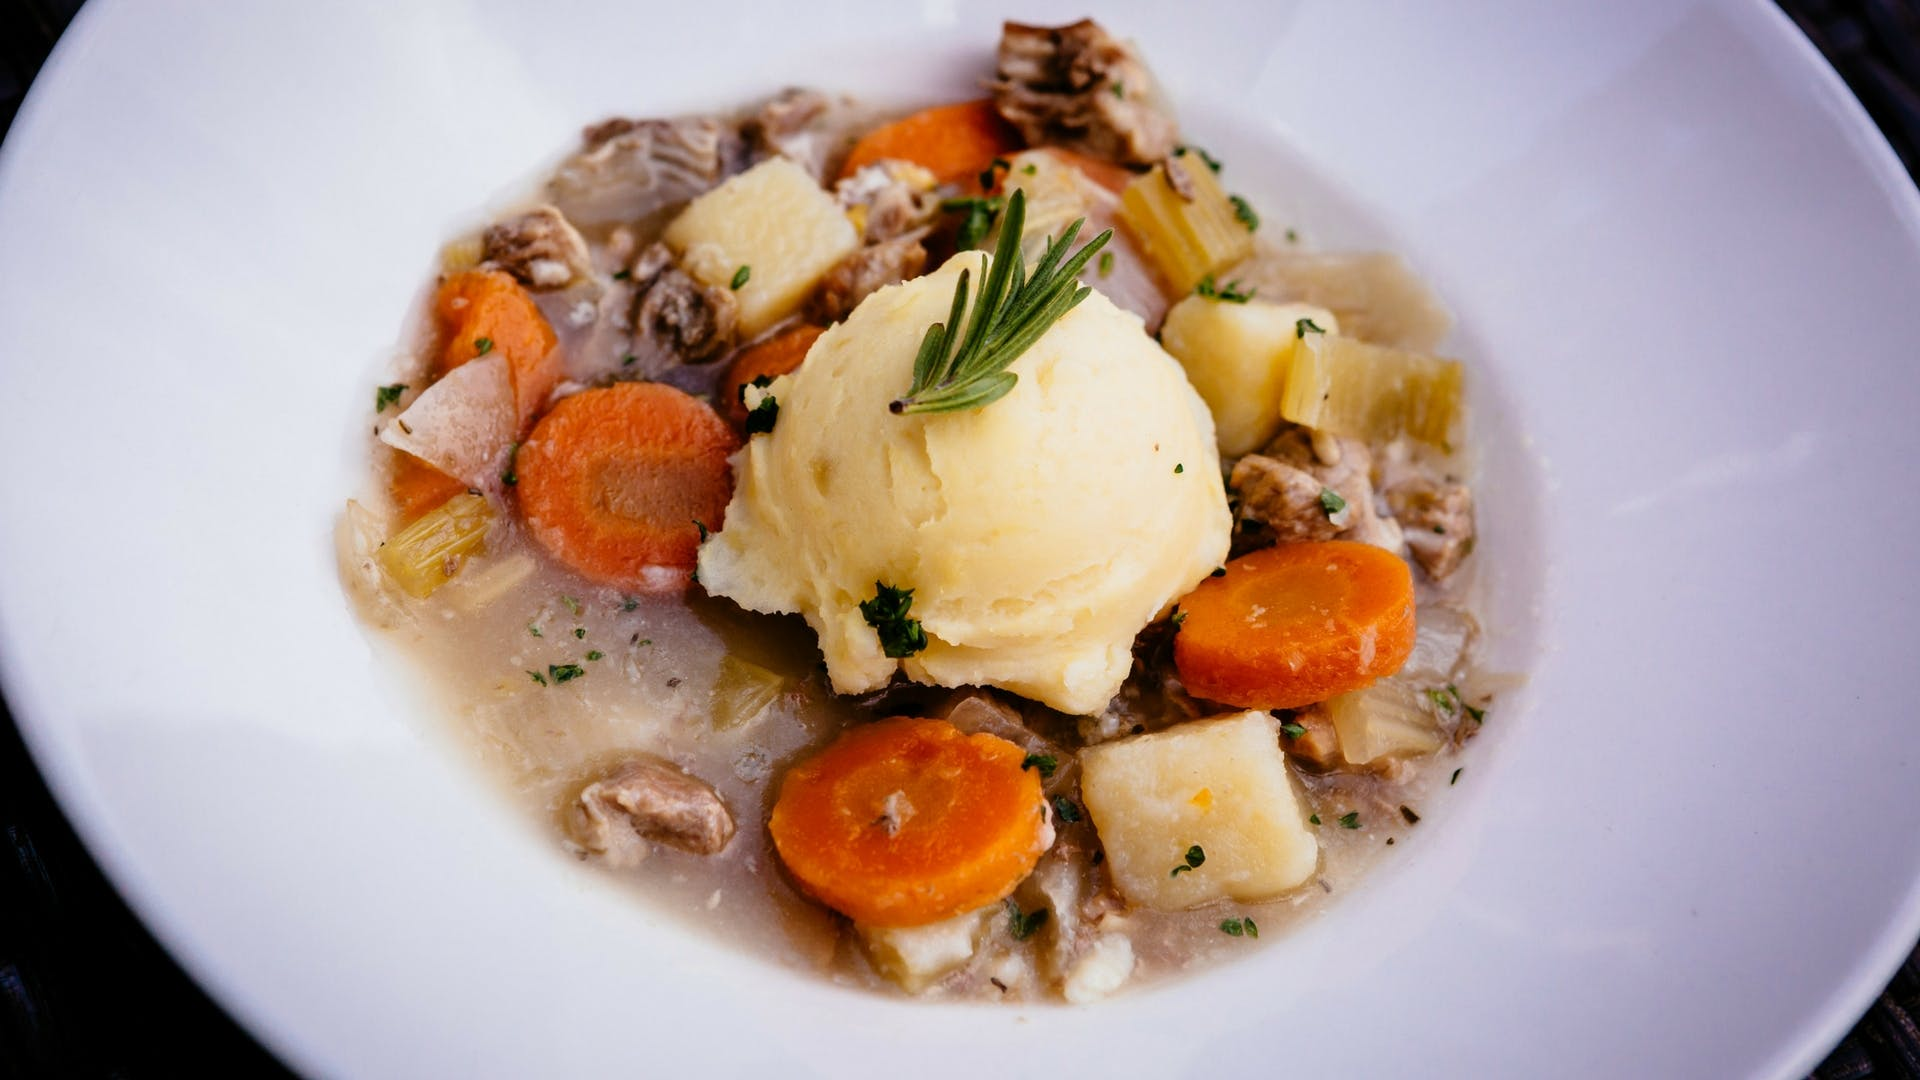 Signature lamb stew at Gleesons Restaurant & Rooms, Roscommon